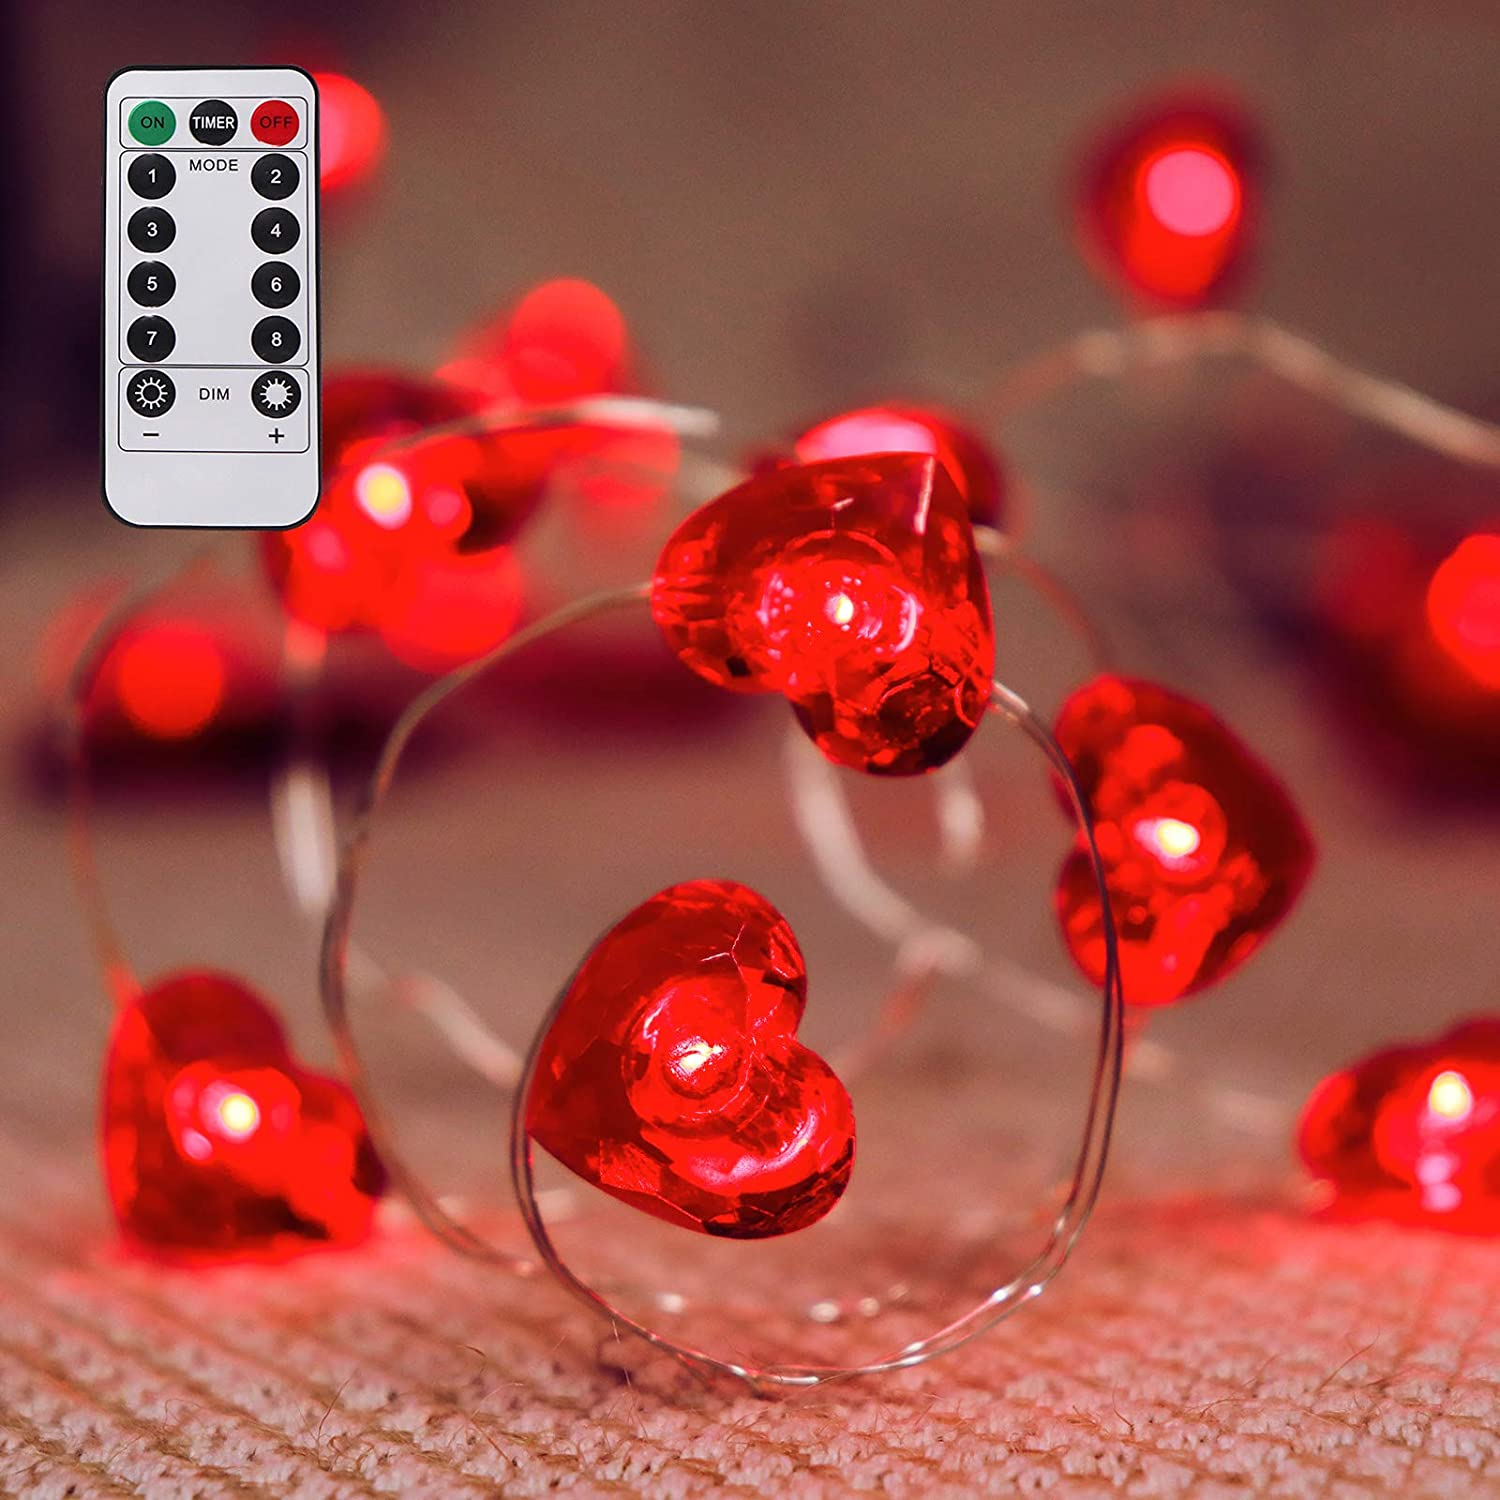 Ivenf Valentine's Day Decorations, 13 ft 40 LEDs Heart Shaped String Lights, for Holidays, Valentines Day, Mother's and Father's Day, Wedding Anniversary and Birthday Party Favors Supplies